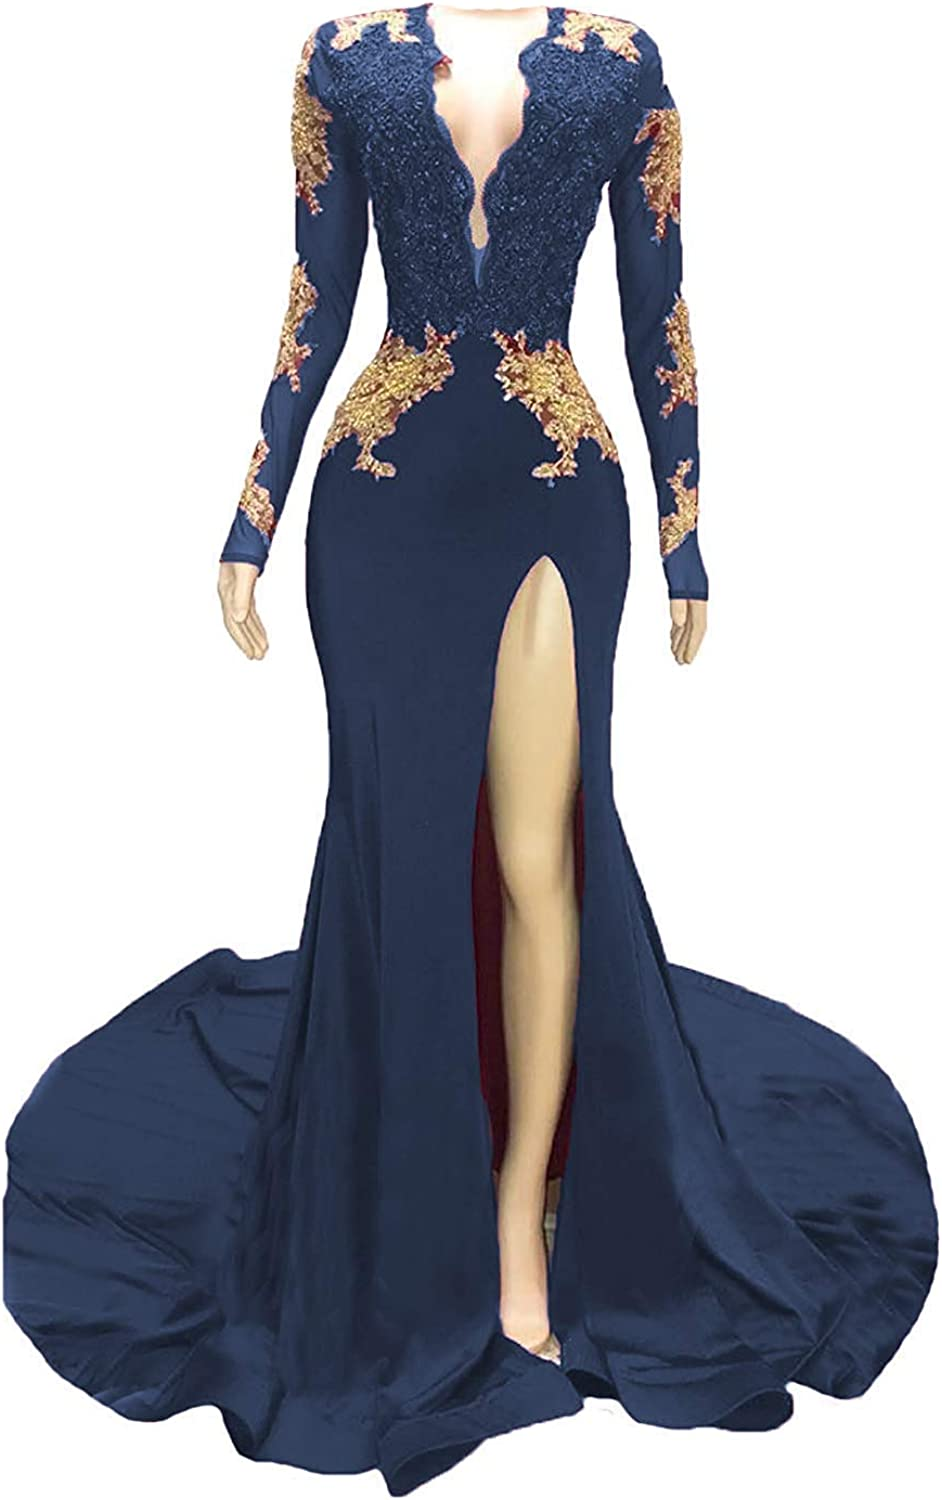 WZW Over item handling 2019 Mermaid Prom Dress Max 64% OFF Gold Lace Slit Sleeves s E Long Side